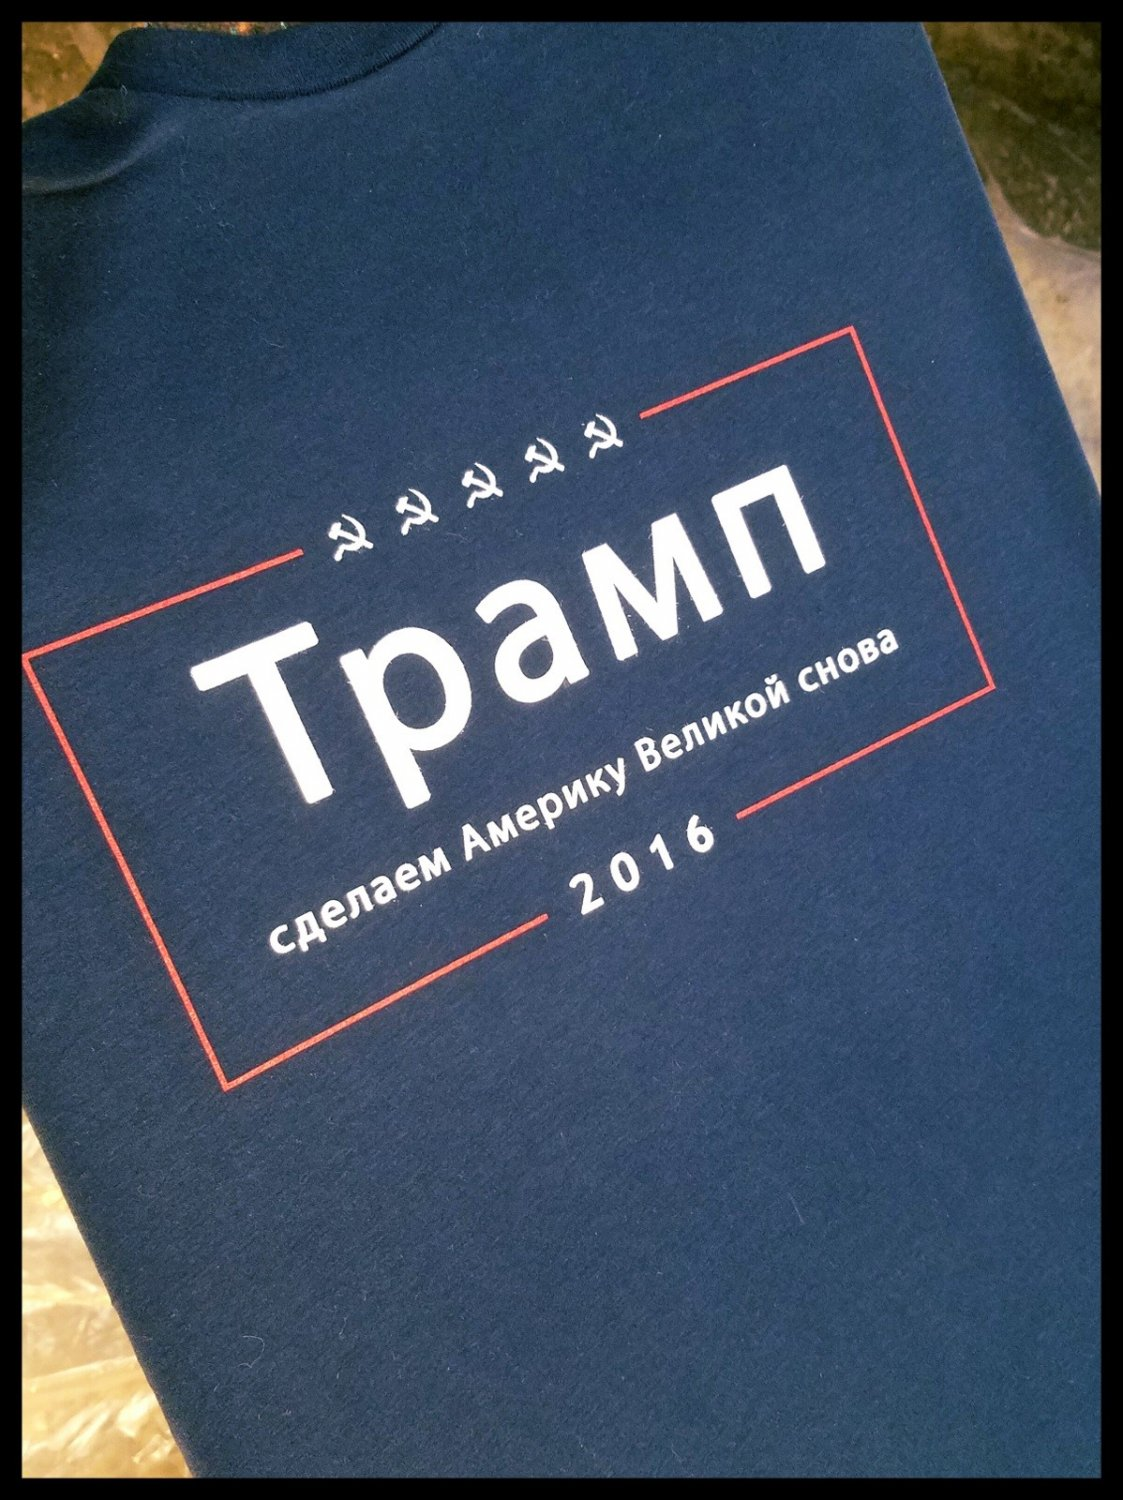 TRUMP CAMPAIGN SHIRT Completely in Russian - NAVY BLUE Premium Sueded T Shirt SIZE 3XL